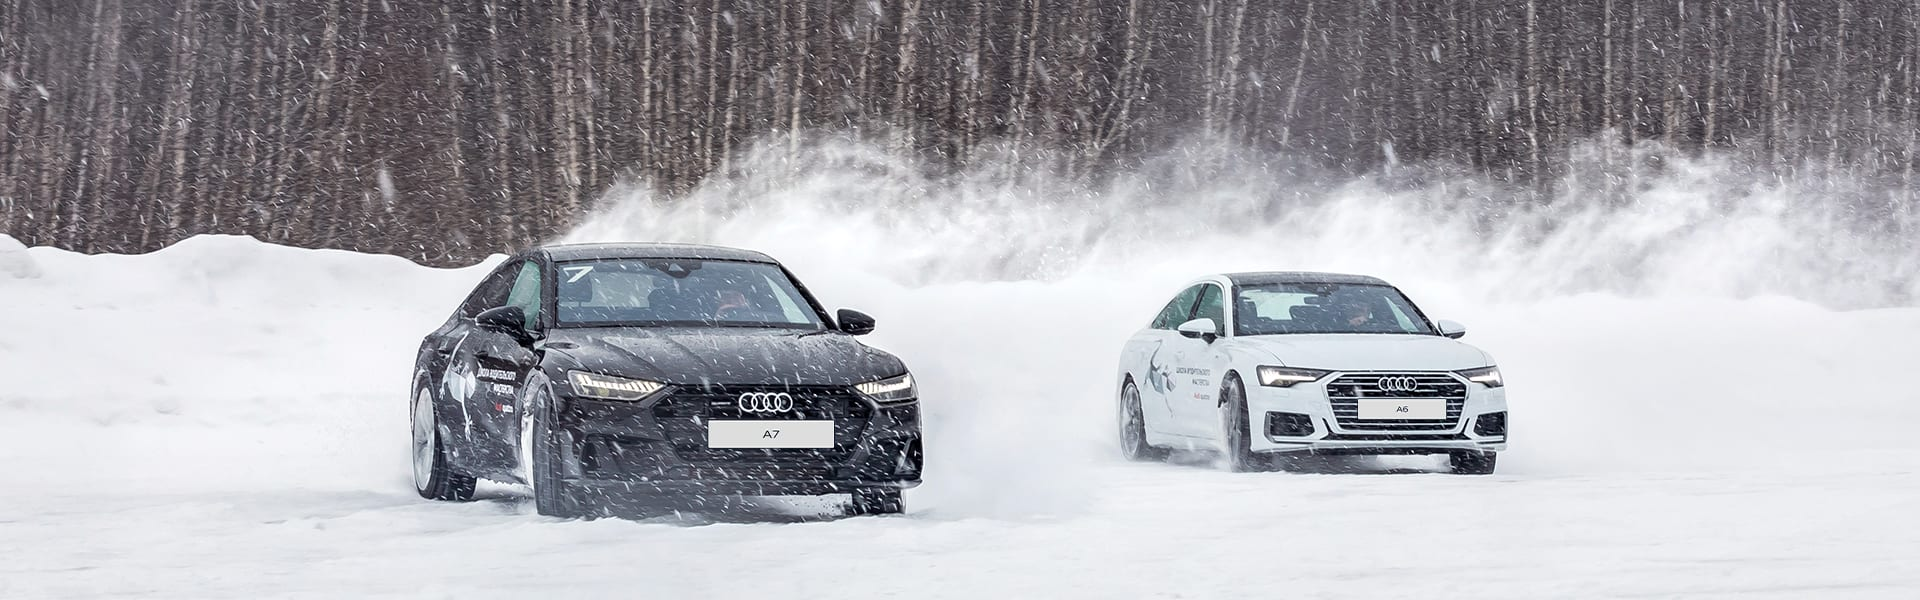 quattro-school-winter-1920x600.jpg